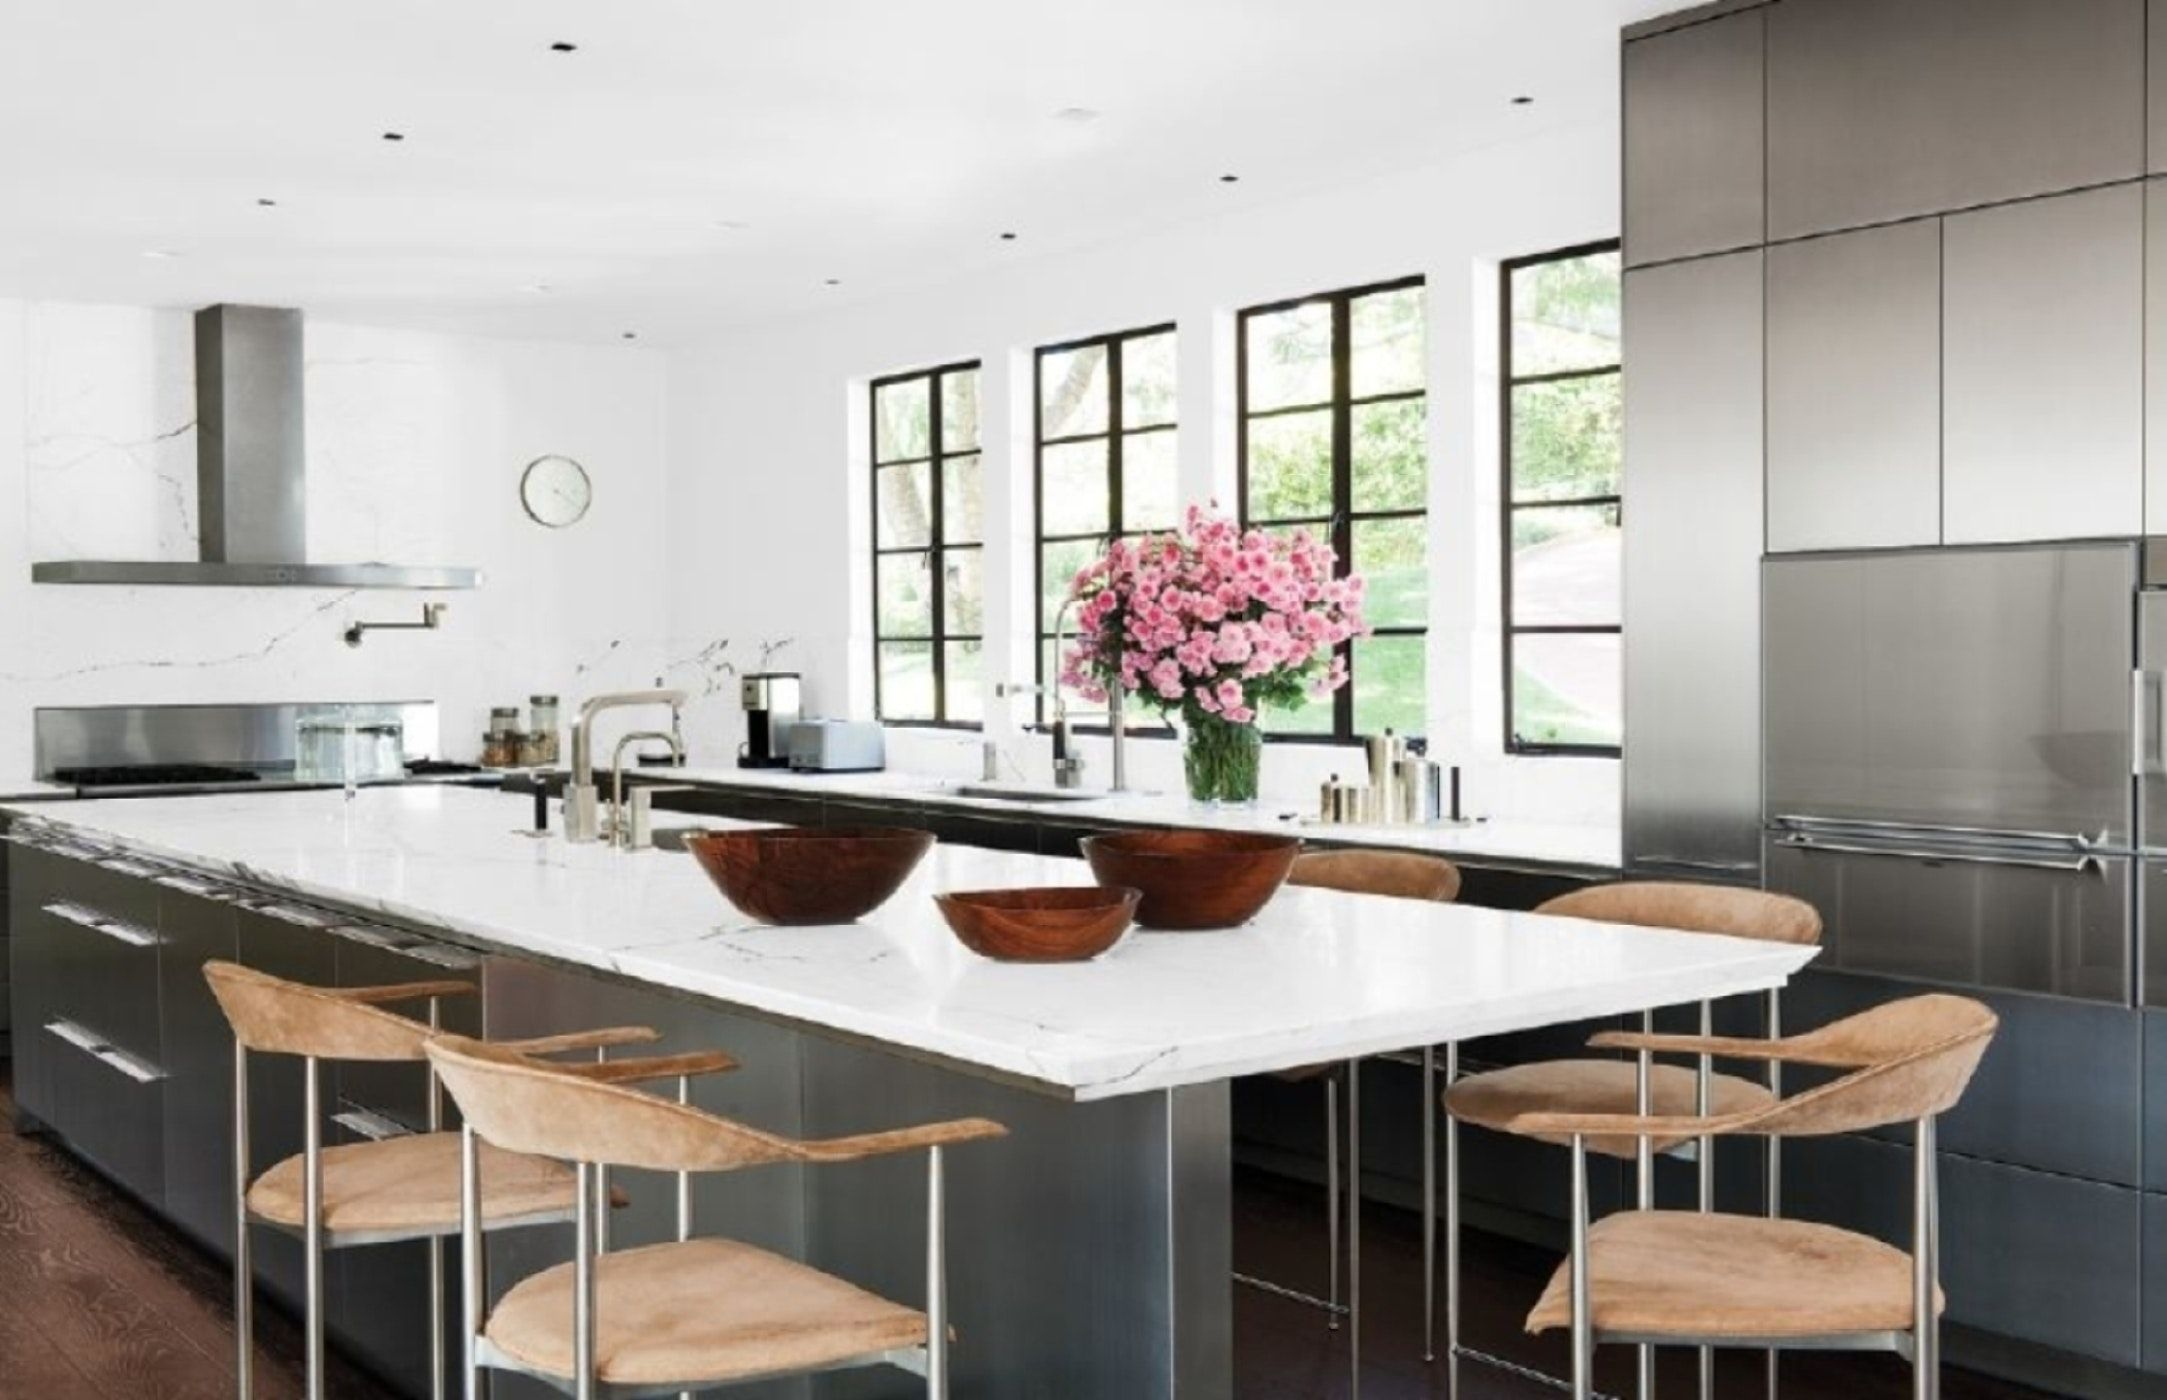 Bel Air Residence - Contemporary Bulthaup Kitchen   Kitchen ...